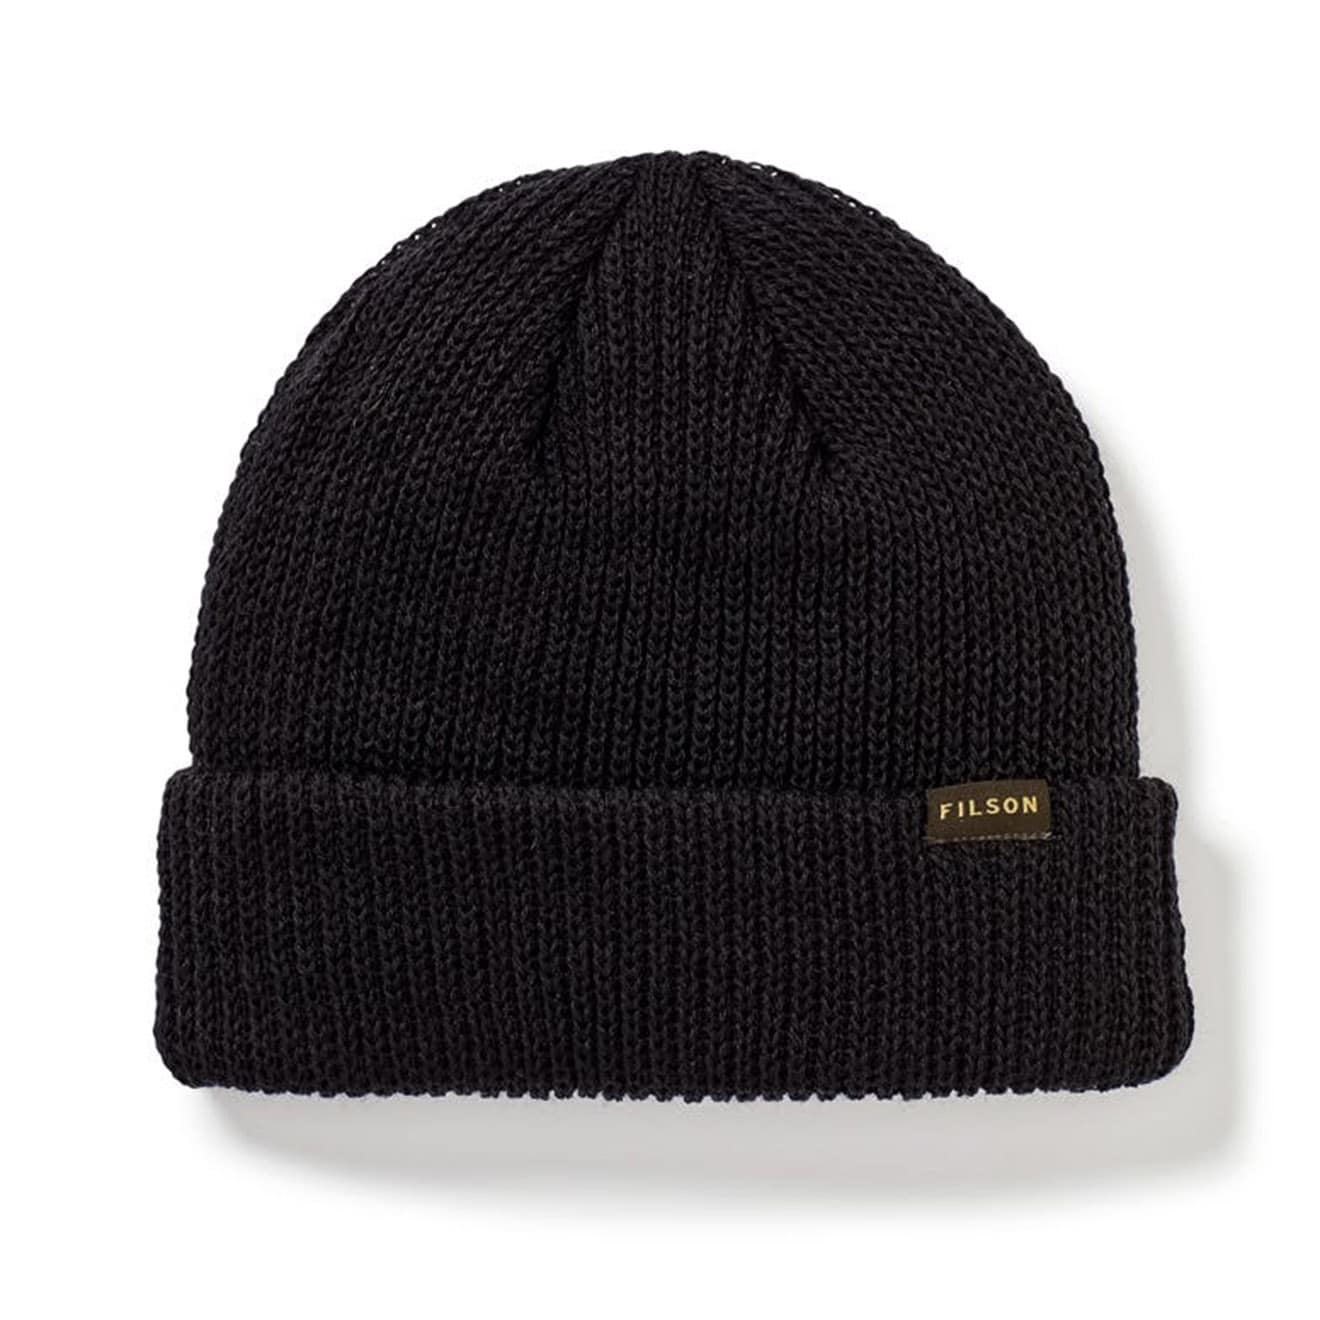 Filson Watch Cap Knitted Hat Black